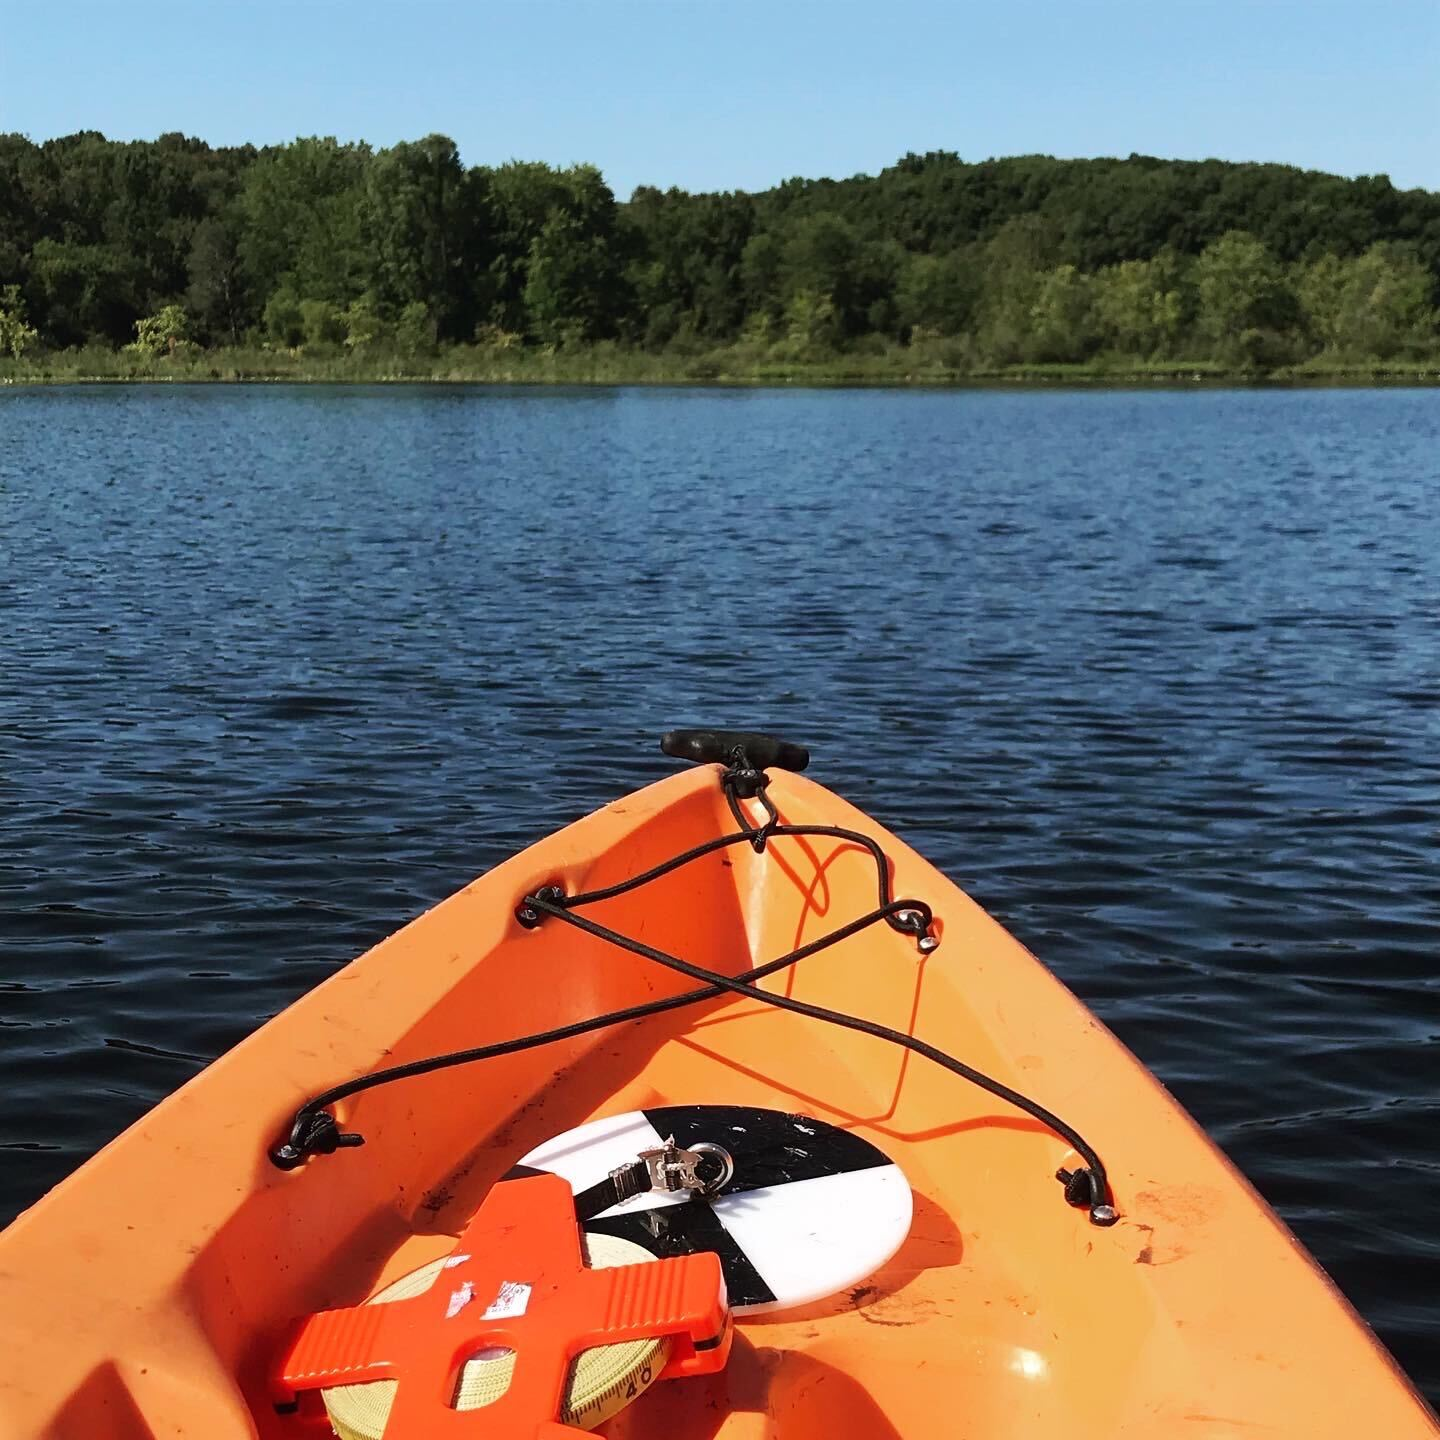 Kayak with a Secchi disk visible on the front